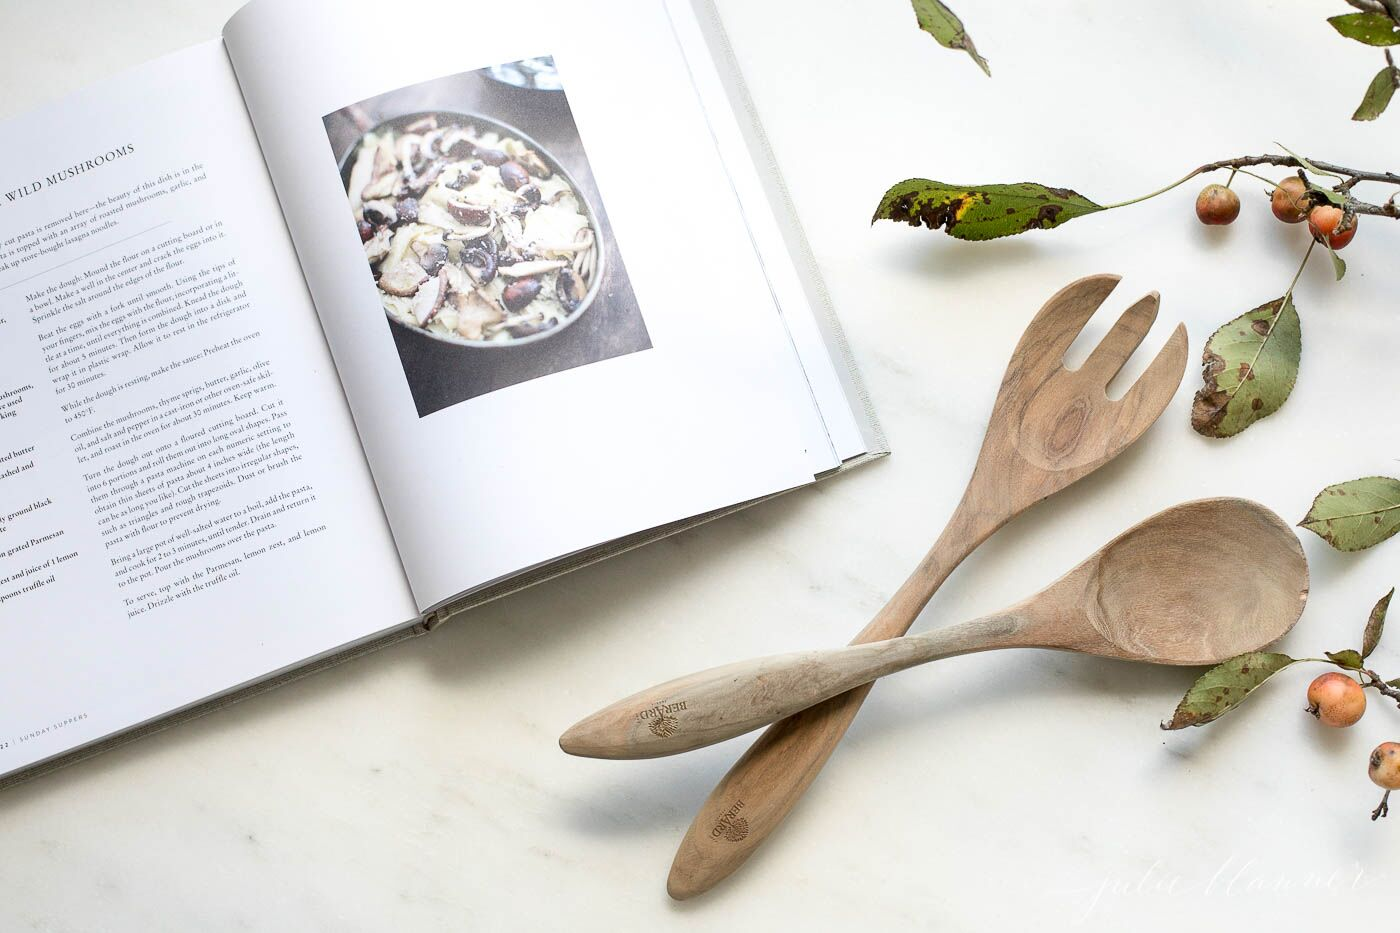 Marble surface, open cookbook, fall berries and wooden spoons to the side.